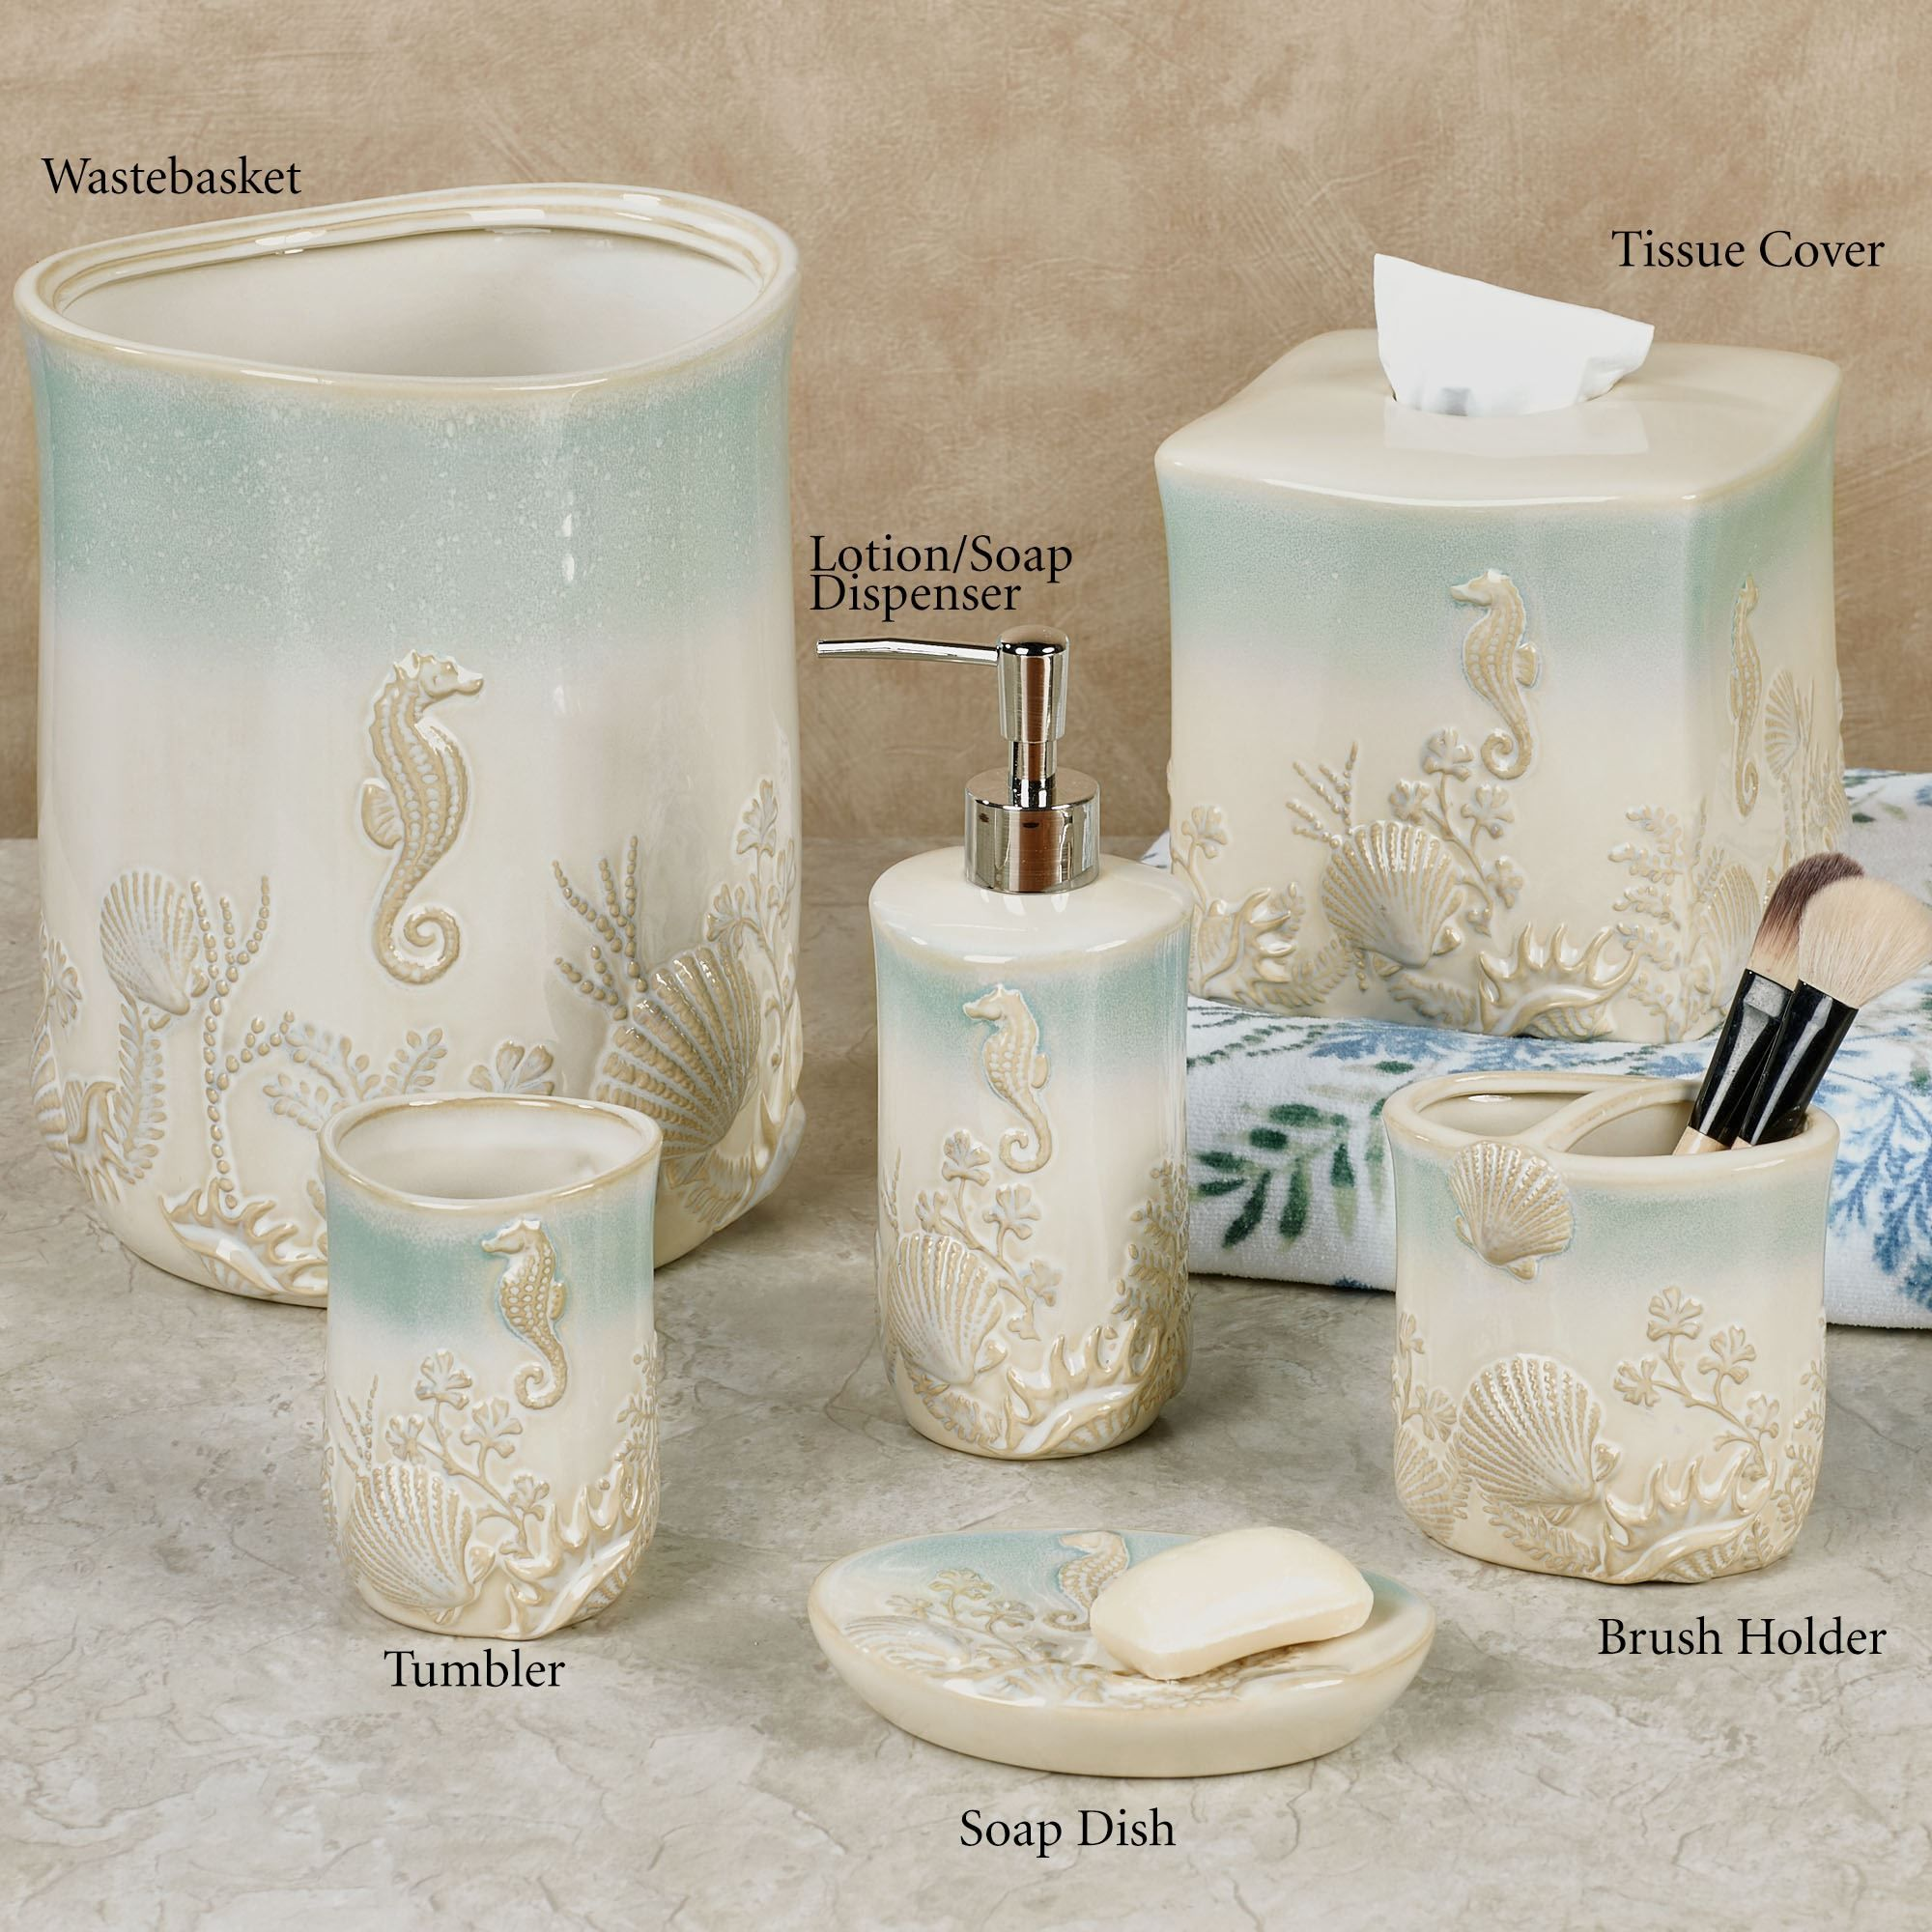 Pearl Seaweed Ombre Ocean Themed Bath Accessories Ocean Bathroom Decor Beach Bathroom Decor Bath Accessories